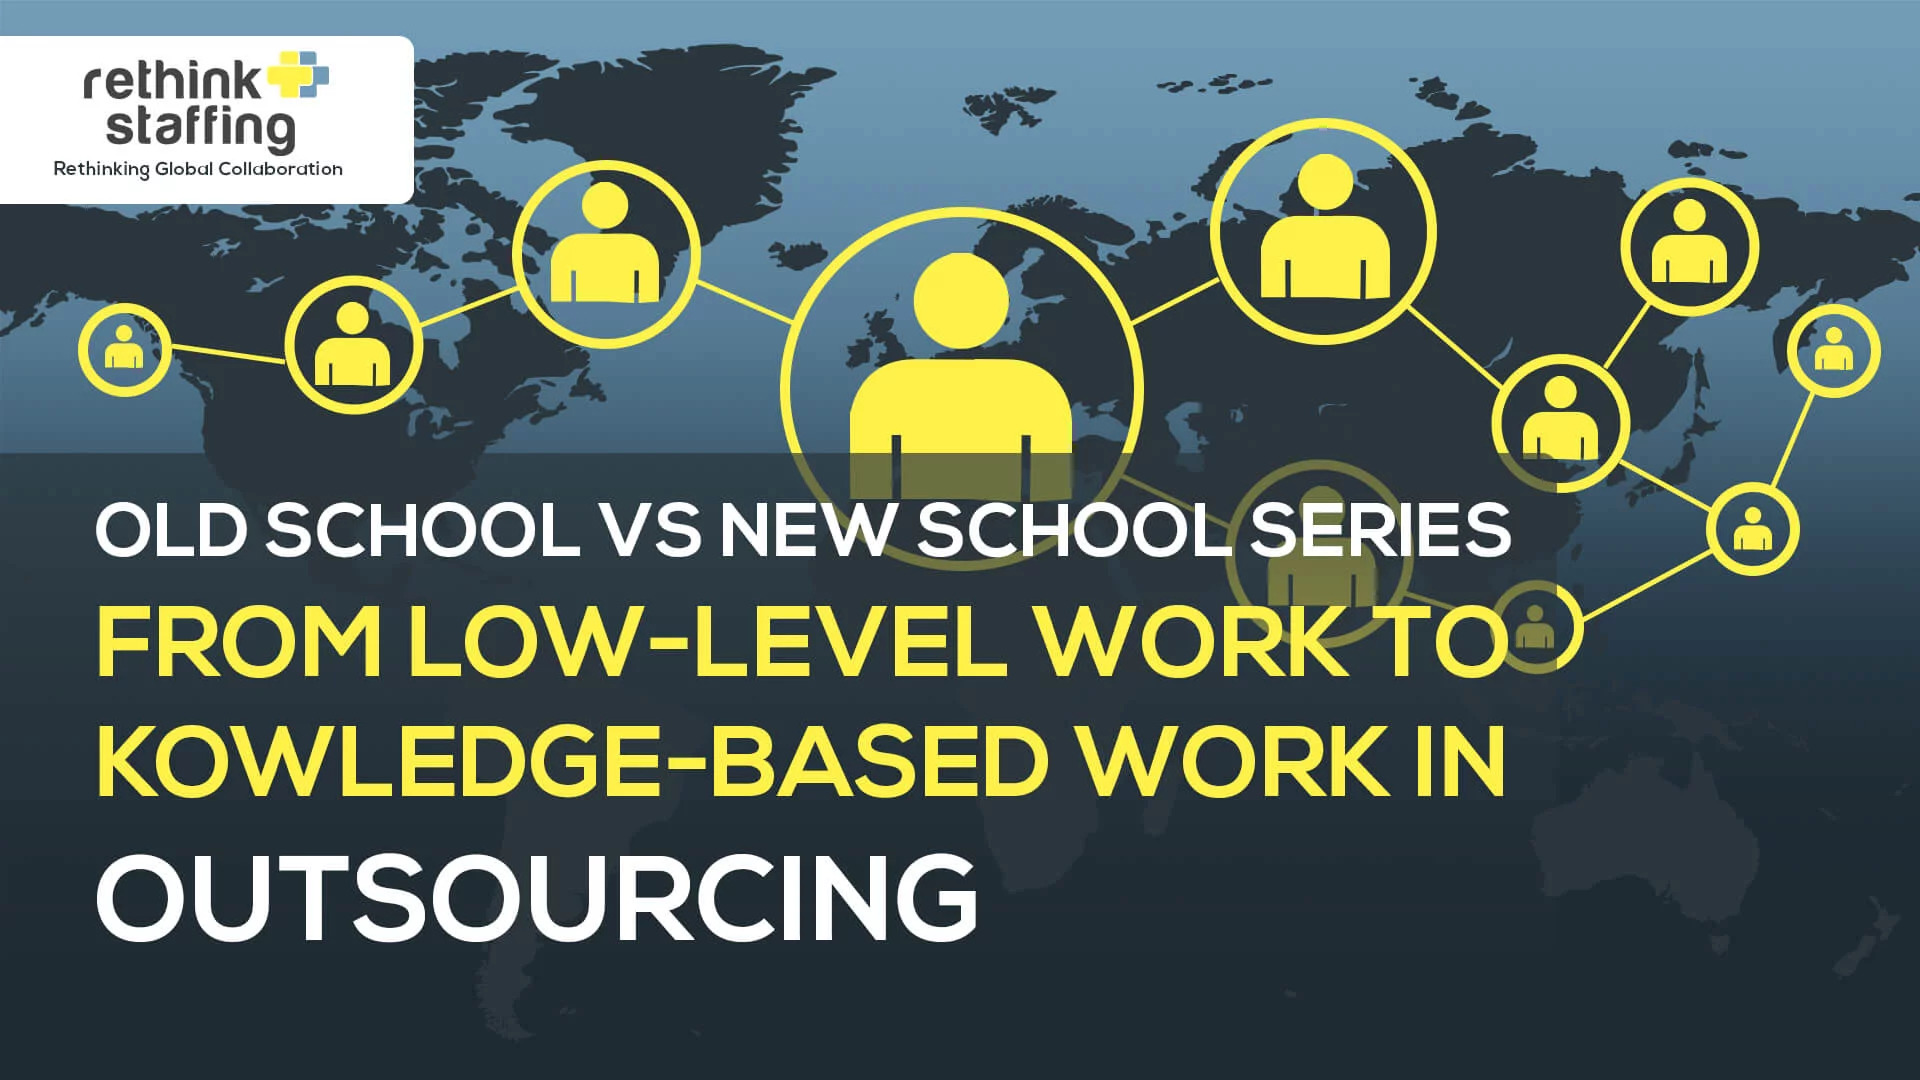 Old School vs New School Series: From Low-Level Work to Knowledge-Based Work in Outsourcing